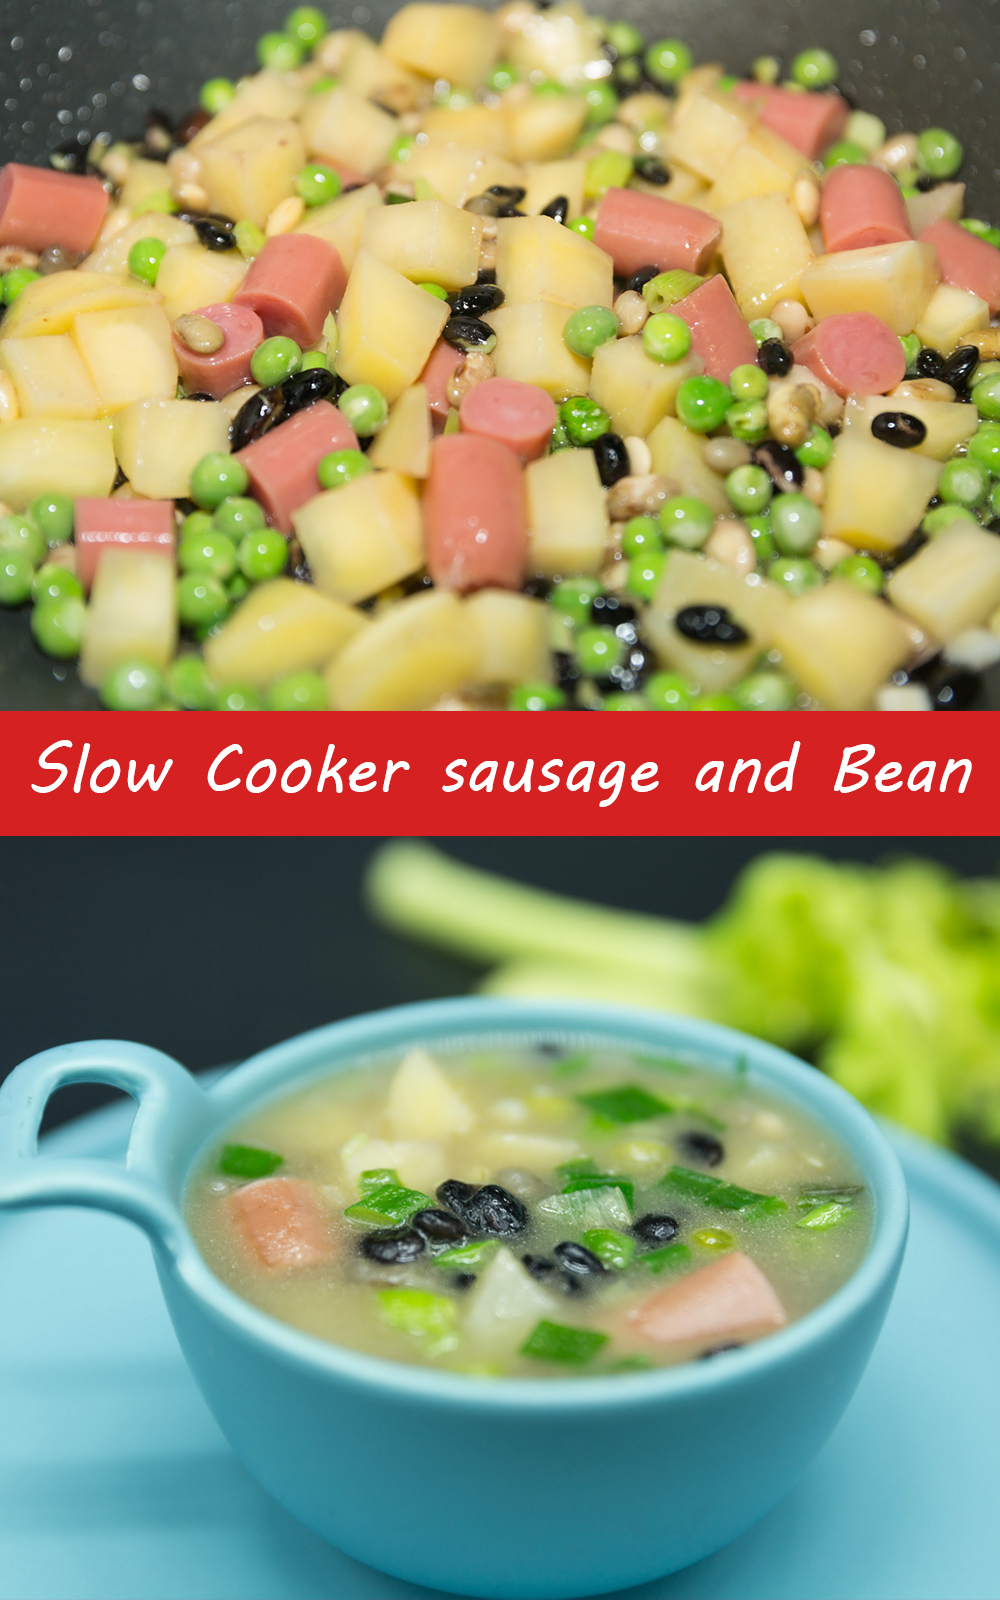 Slow Cooker sausage and Bean Soup